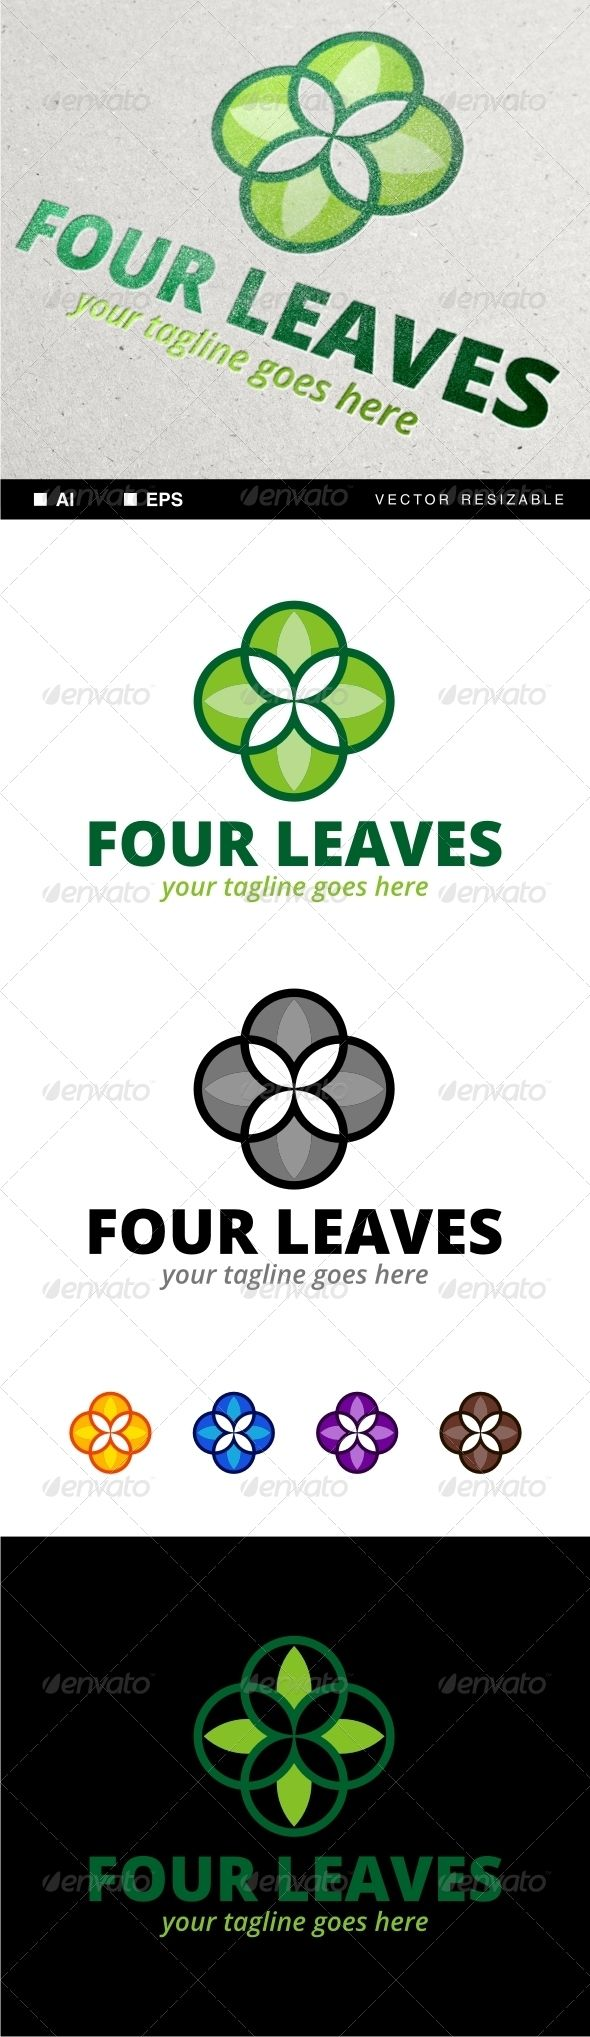 Four Leaves Logo — Vector EPS #leaf #flower • Available here → https://graphicriver.net/item/four-leaves-logo/7081765?ref=pxcr